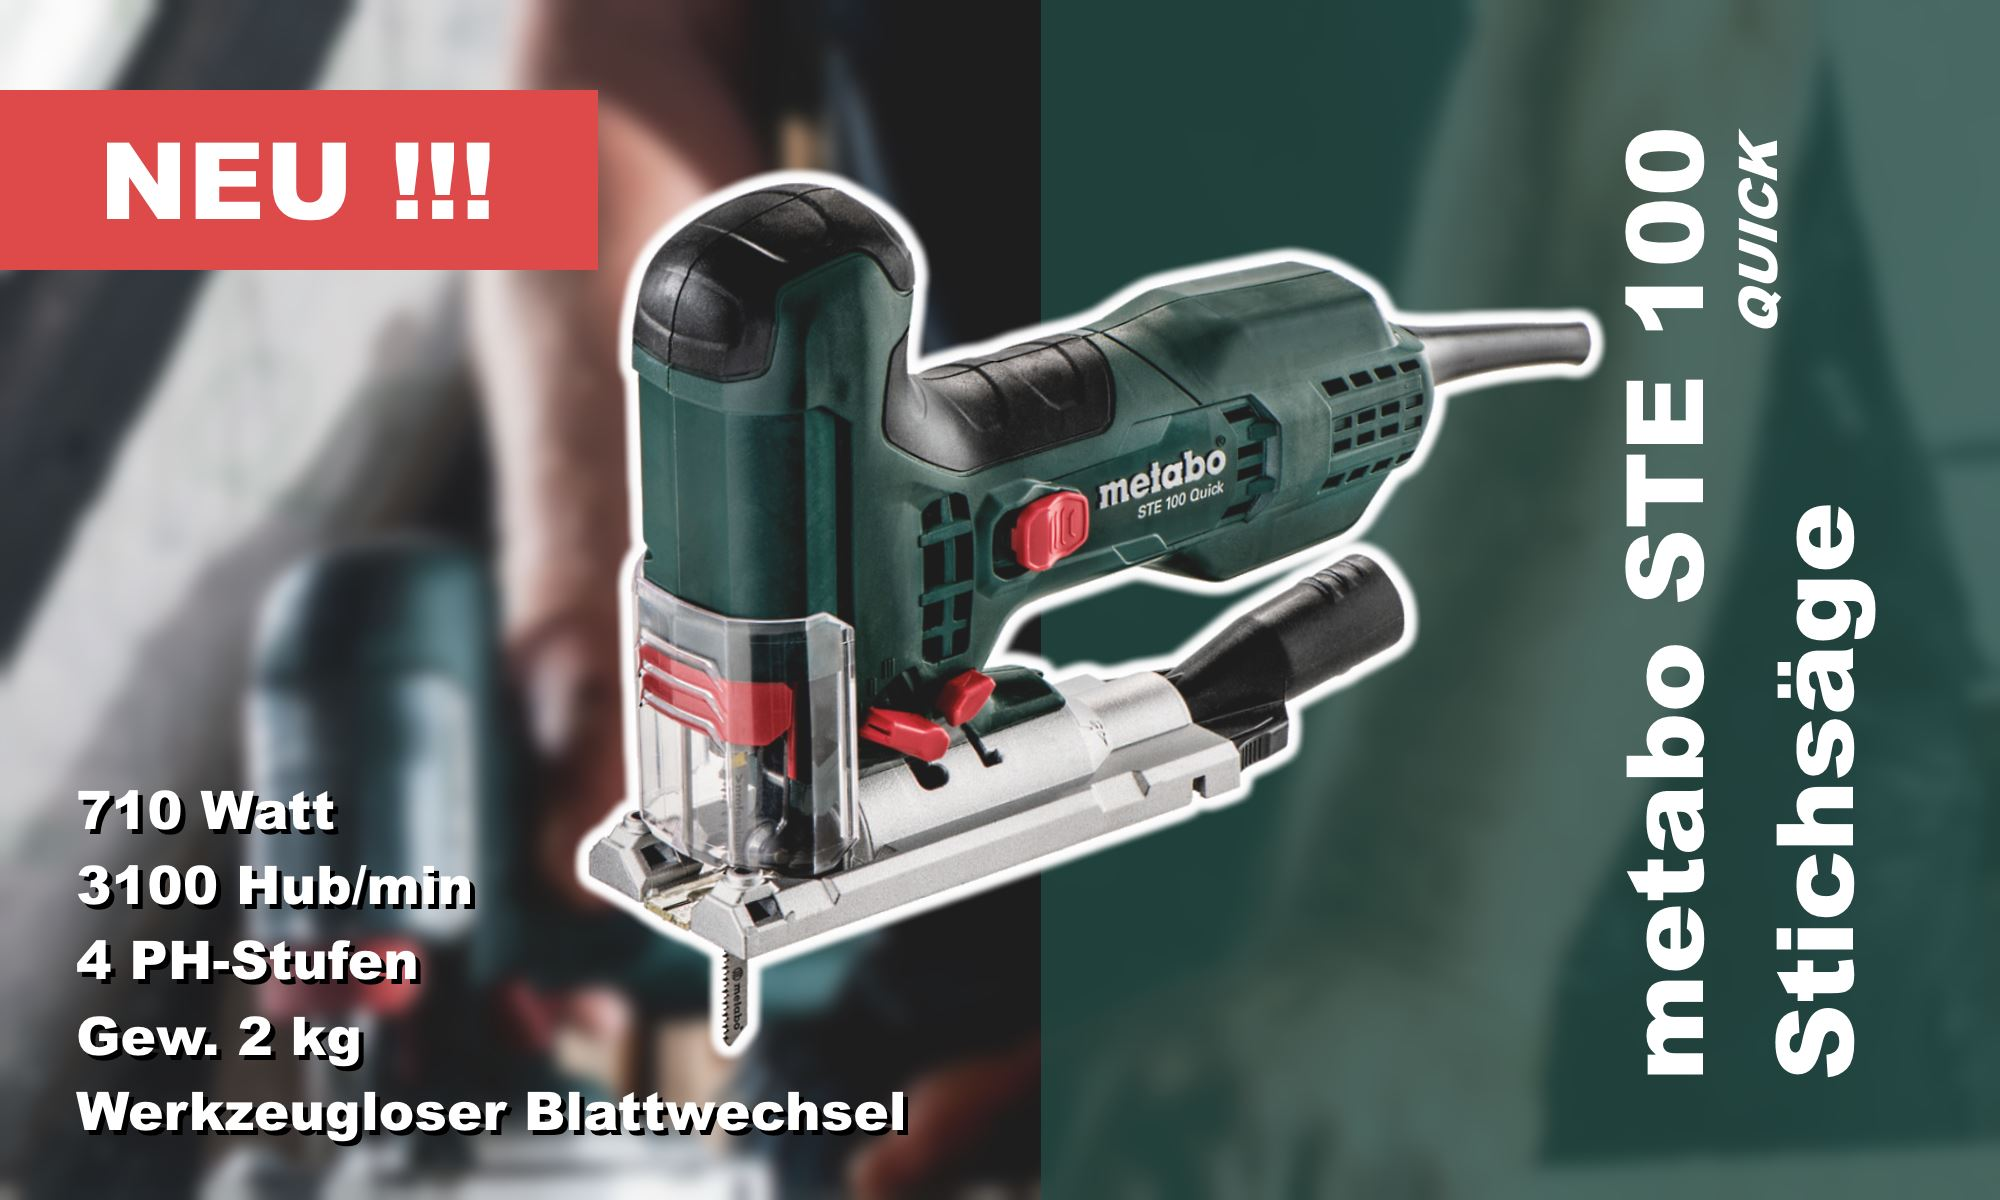 metabo_stichsaege_ste_100_quick